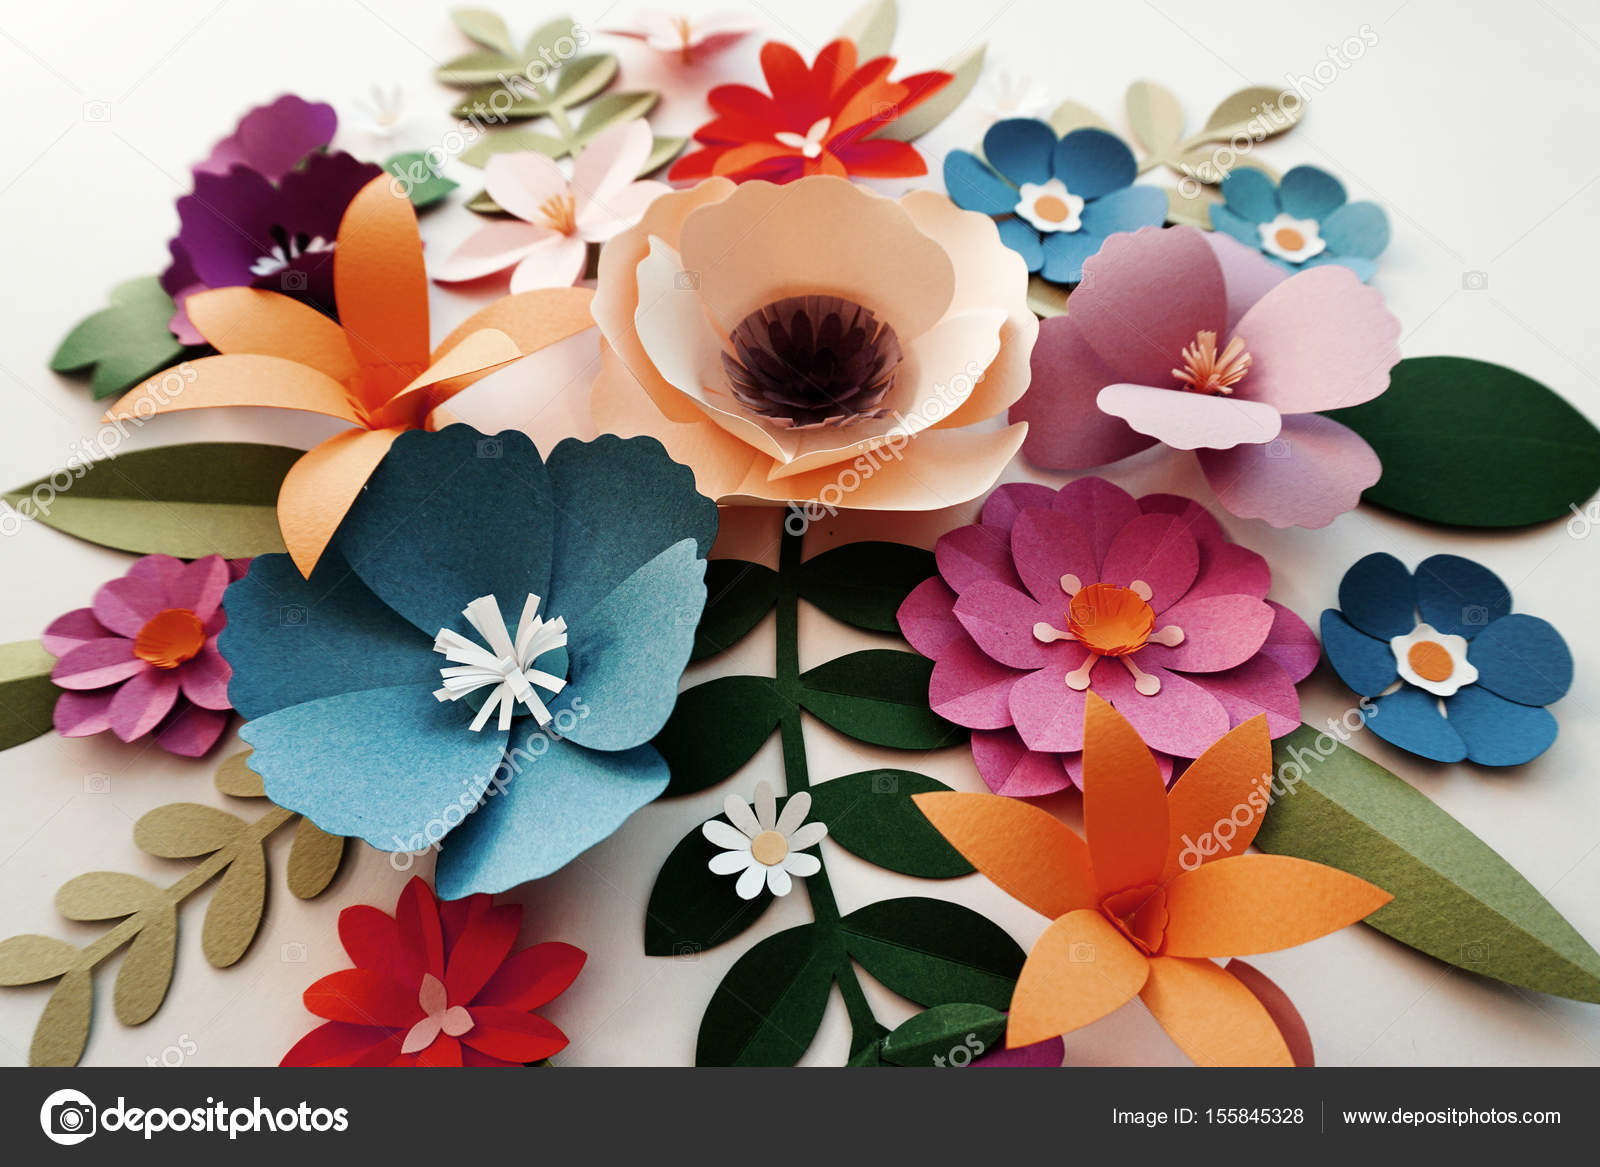 Flowers Papercraft Flowers Healthy